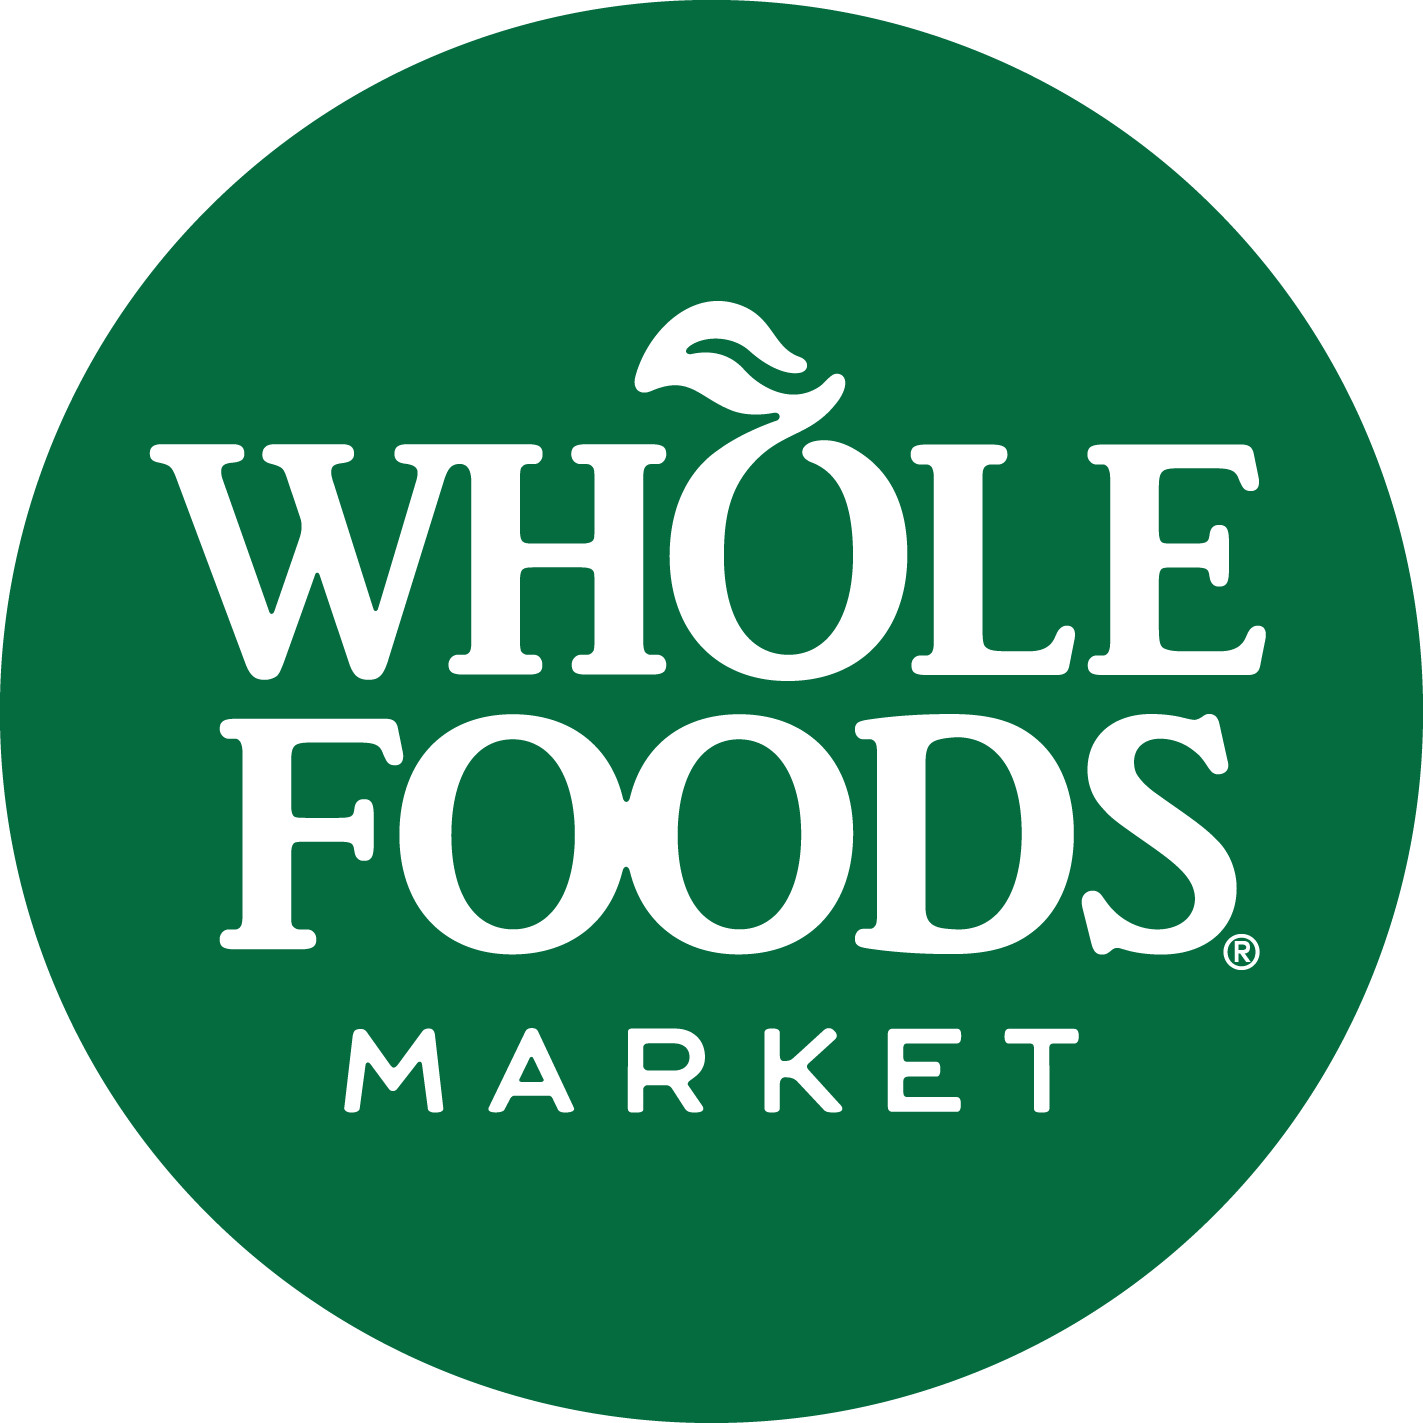 Whole Foods Market Logo png